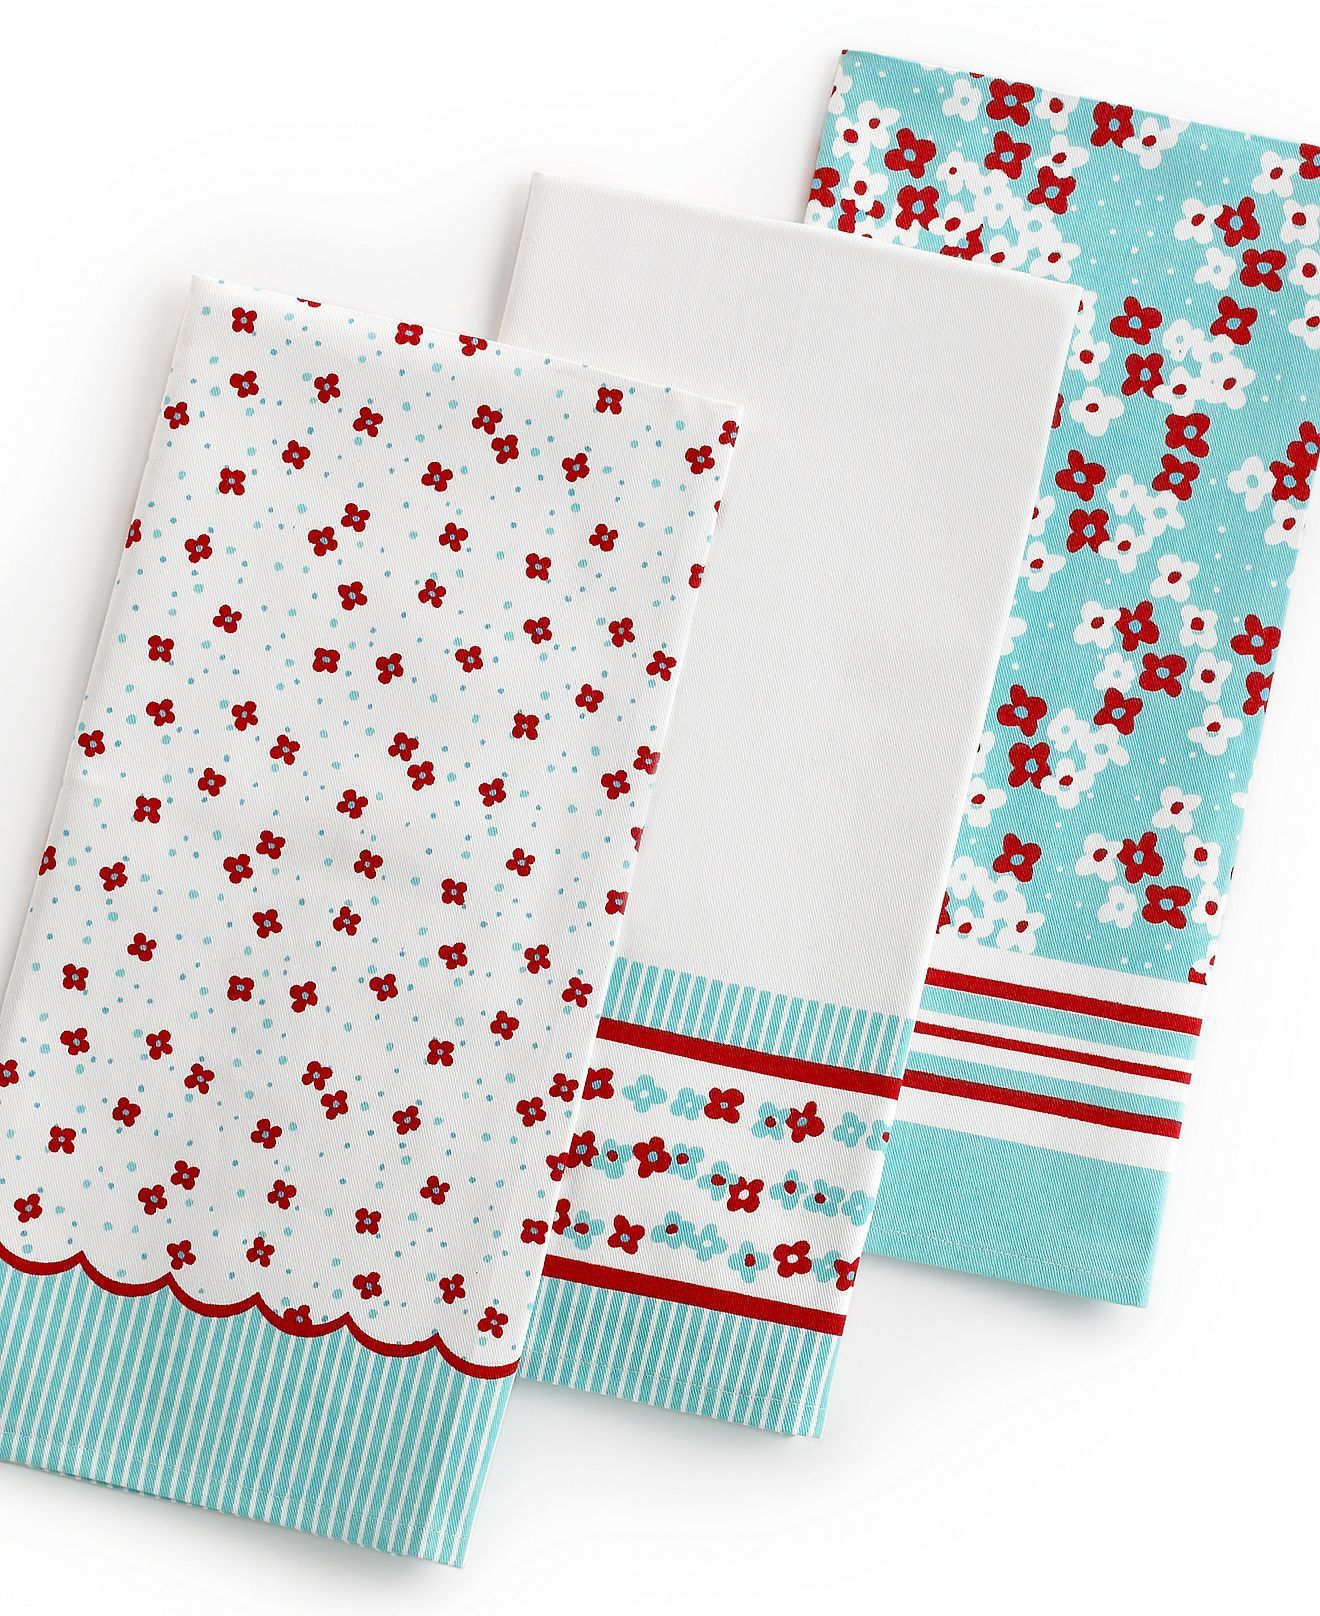 martha stewart collection kitchen towels set of 3 scalloped print